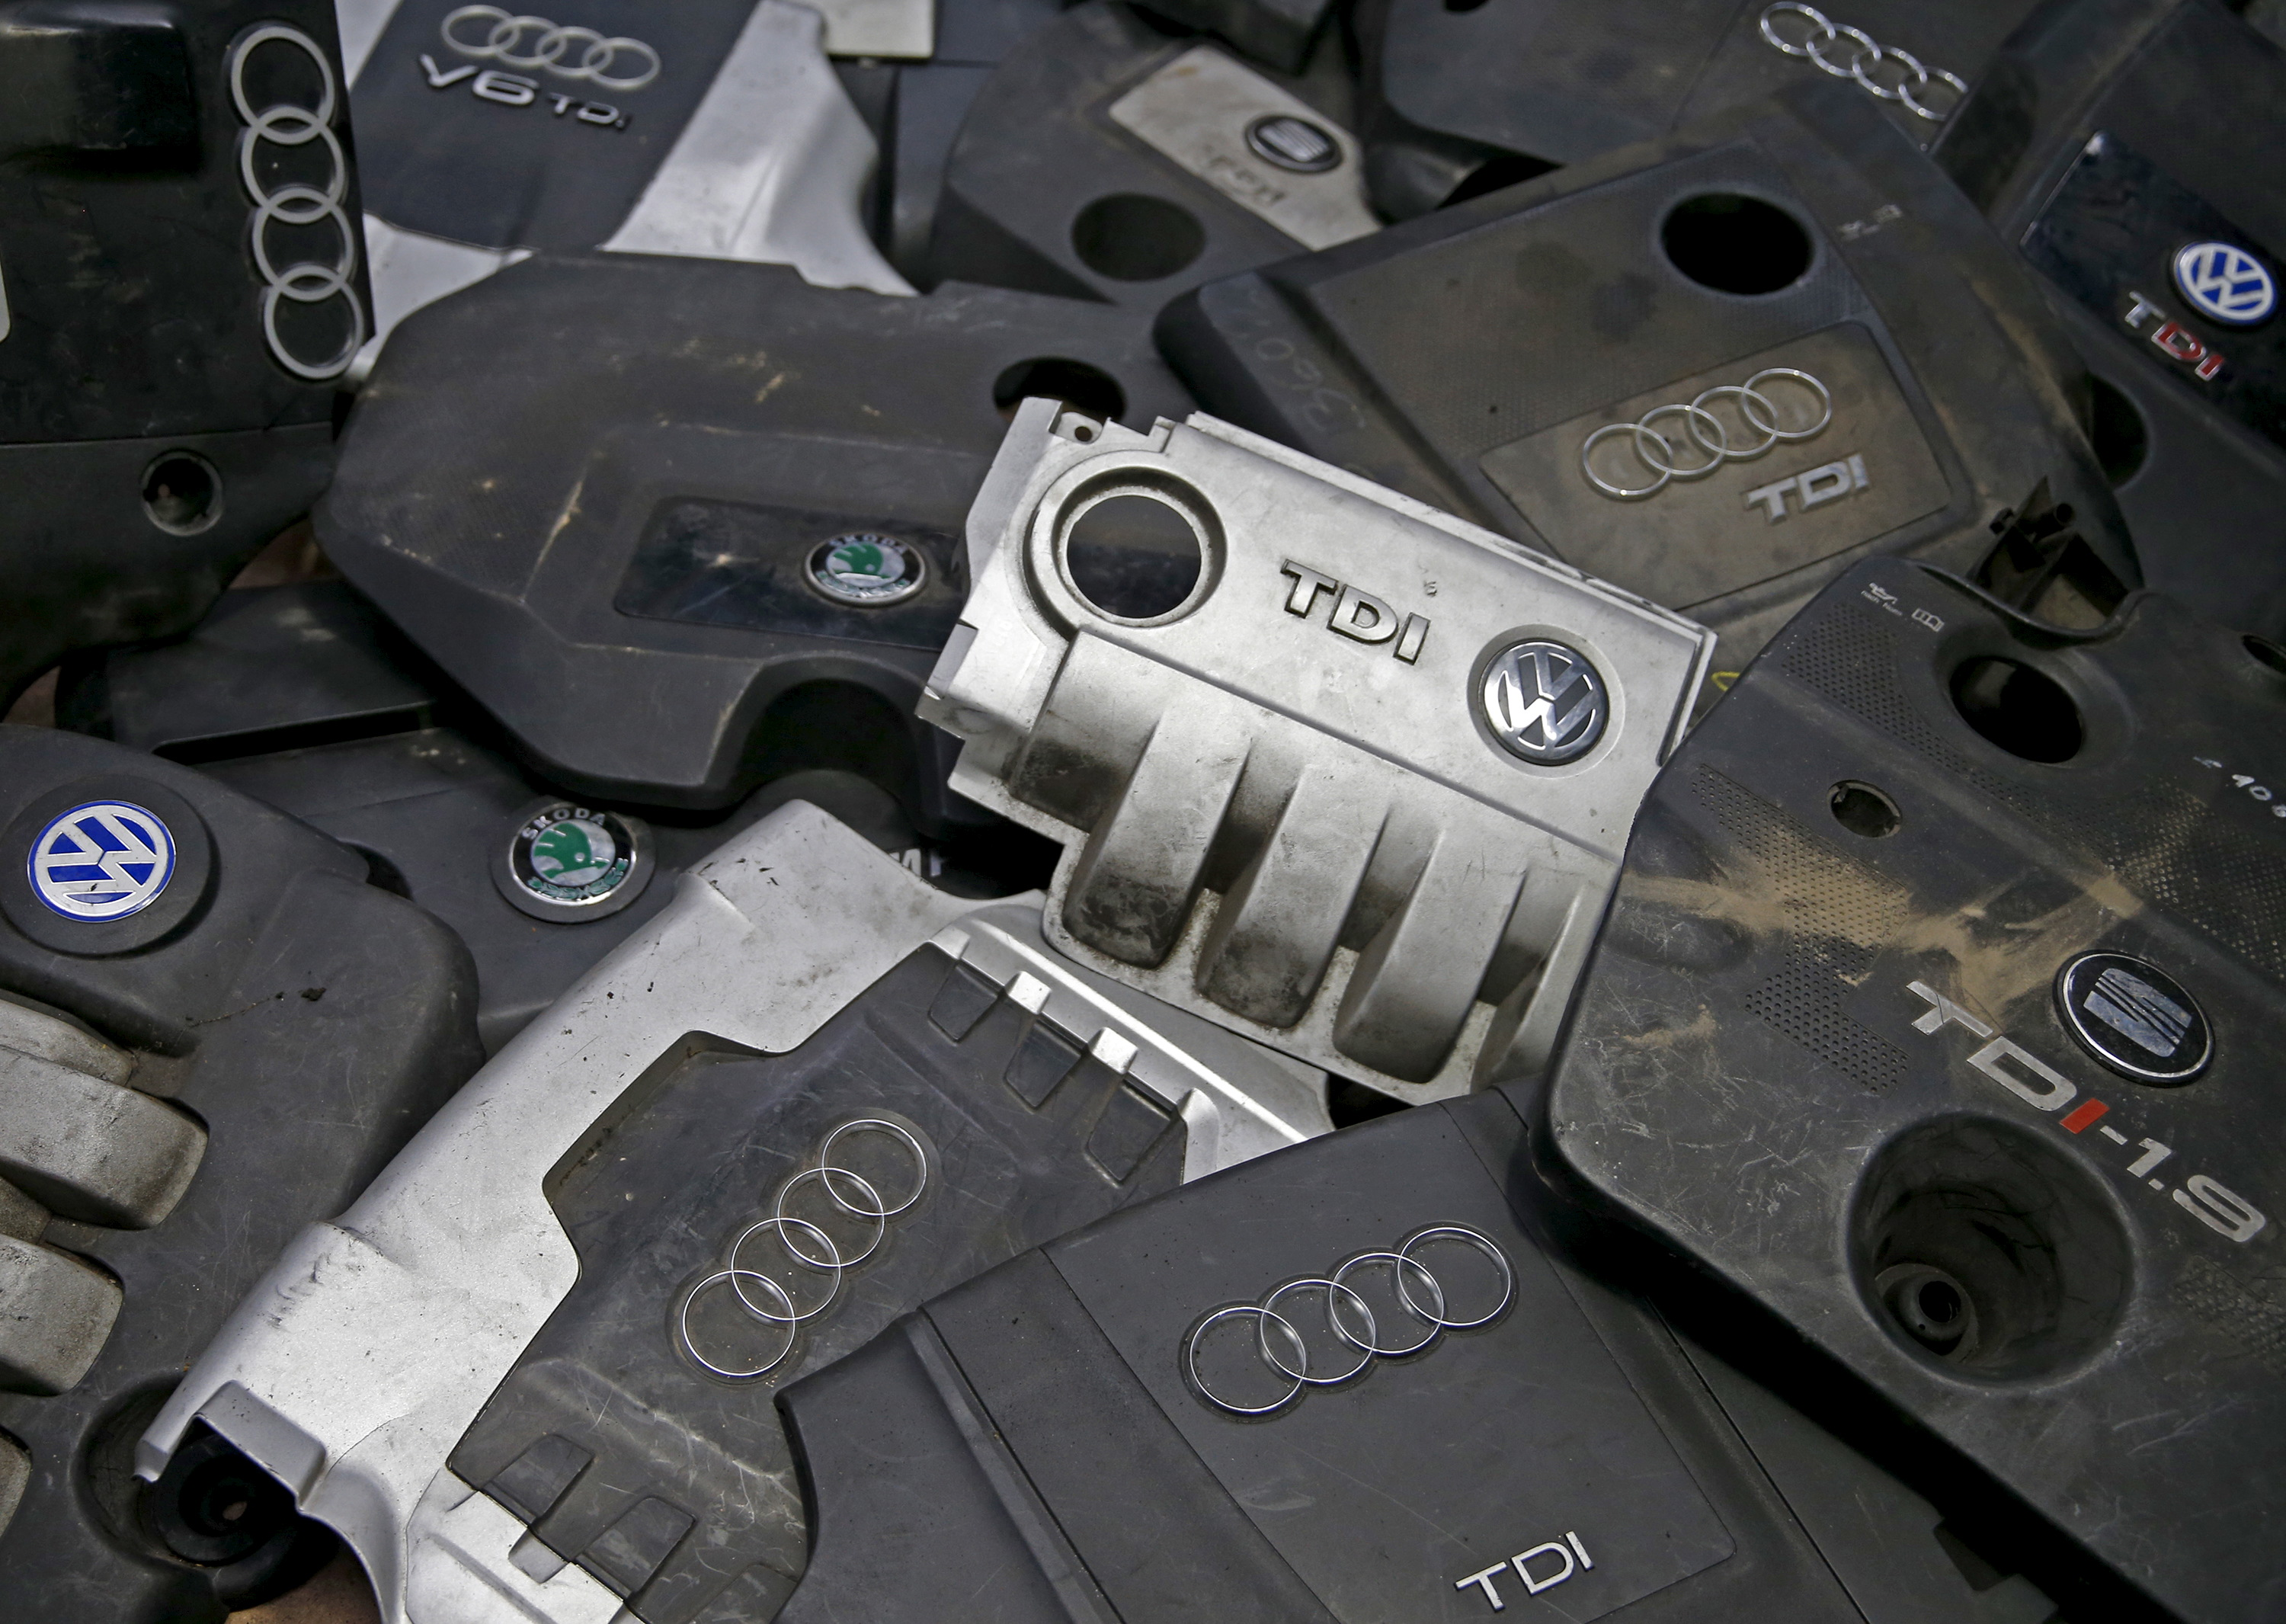 Covers for TDI diesel Volkswagen, Audi, SEAT and Skoda engines are seen in Jelah, Bosnia and Herzegovina, in this September 29, 2015 picture illustration. Volkswagen said on Tuesday it will repair up to 11 million vehicles and overhaul its namesake brand following the scandal over its rigging of emissions tests. The German carmaker said previously about 11 million vehicles were fitted with software capable of cheating emissions tests, including 5 million at its VW brand, 2.1 million at luxury brand Audi, 1.2 million at Skoda and 1.8 million light commercial vehicles. About 700,000 of the 11 million diesel engines involved in scandal were manufactured by the company's brand Seat, a spokesman for the Spanish unit said on Tuesday. Refitting 11 million cars would be among the biggest recalls in history by a single automaker. REUTERS/Dado Ruvic - GF10000226855